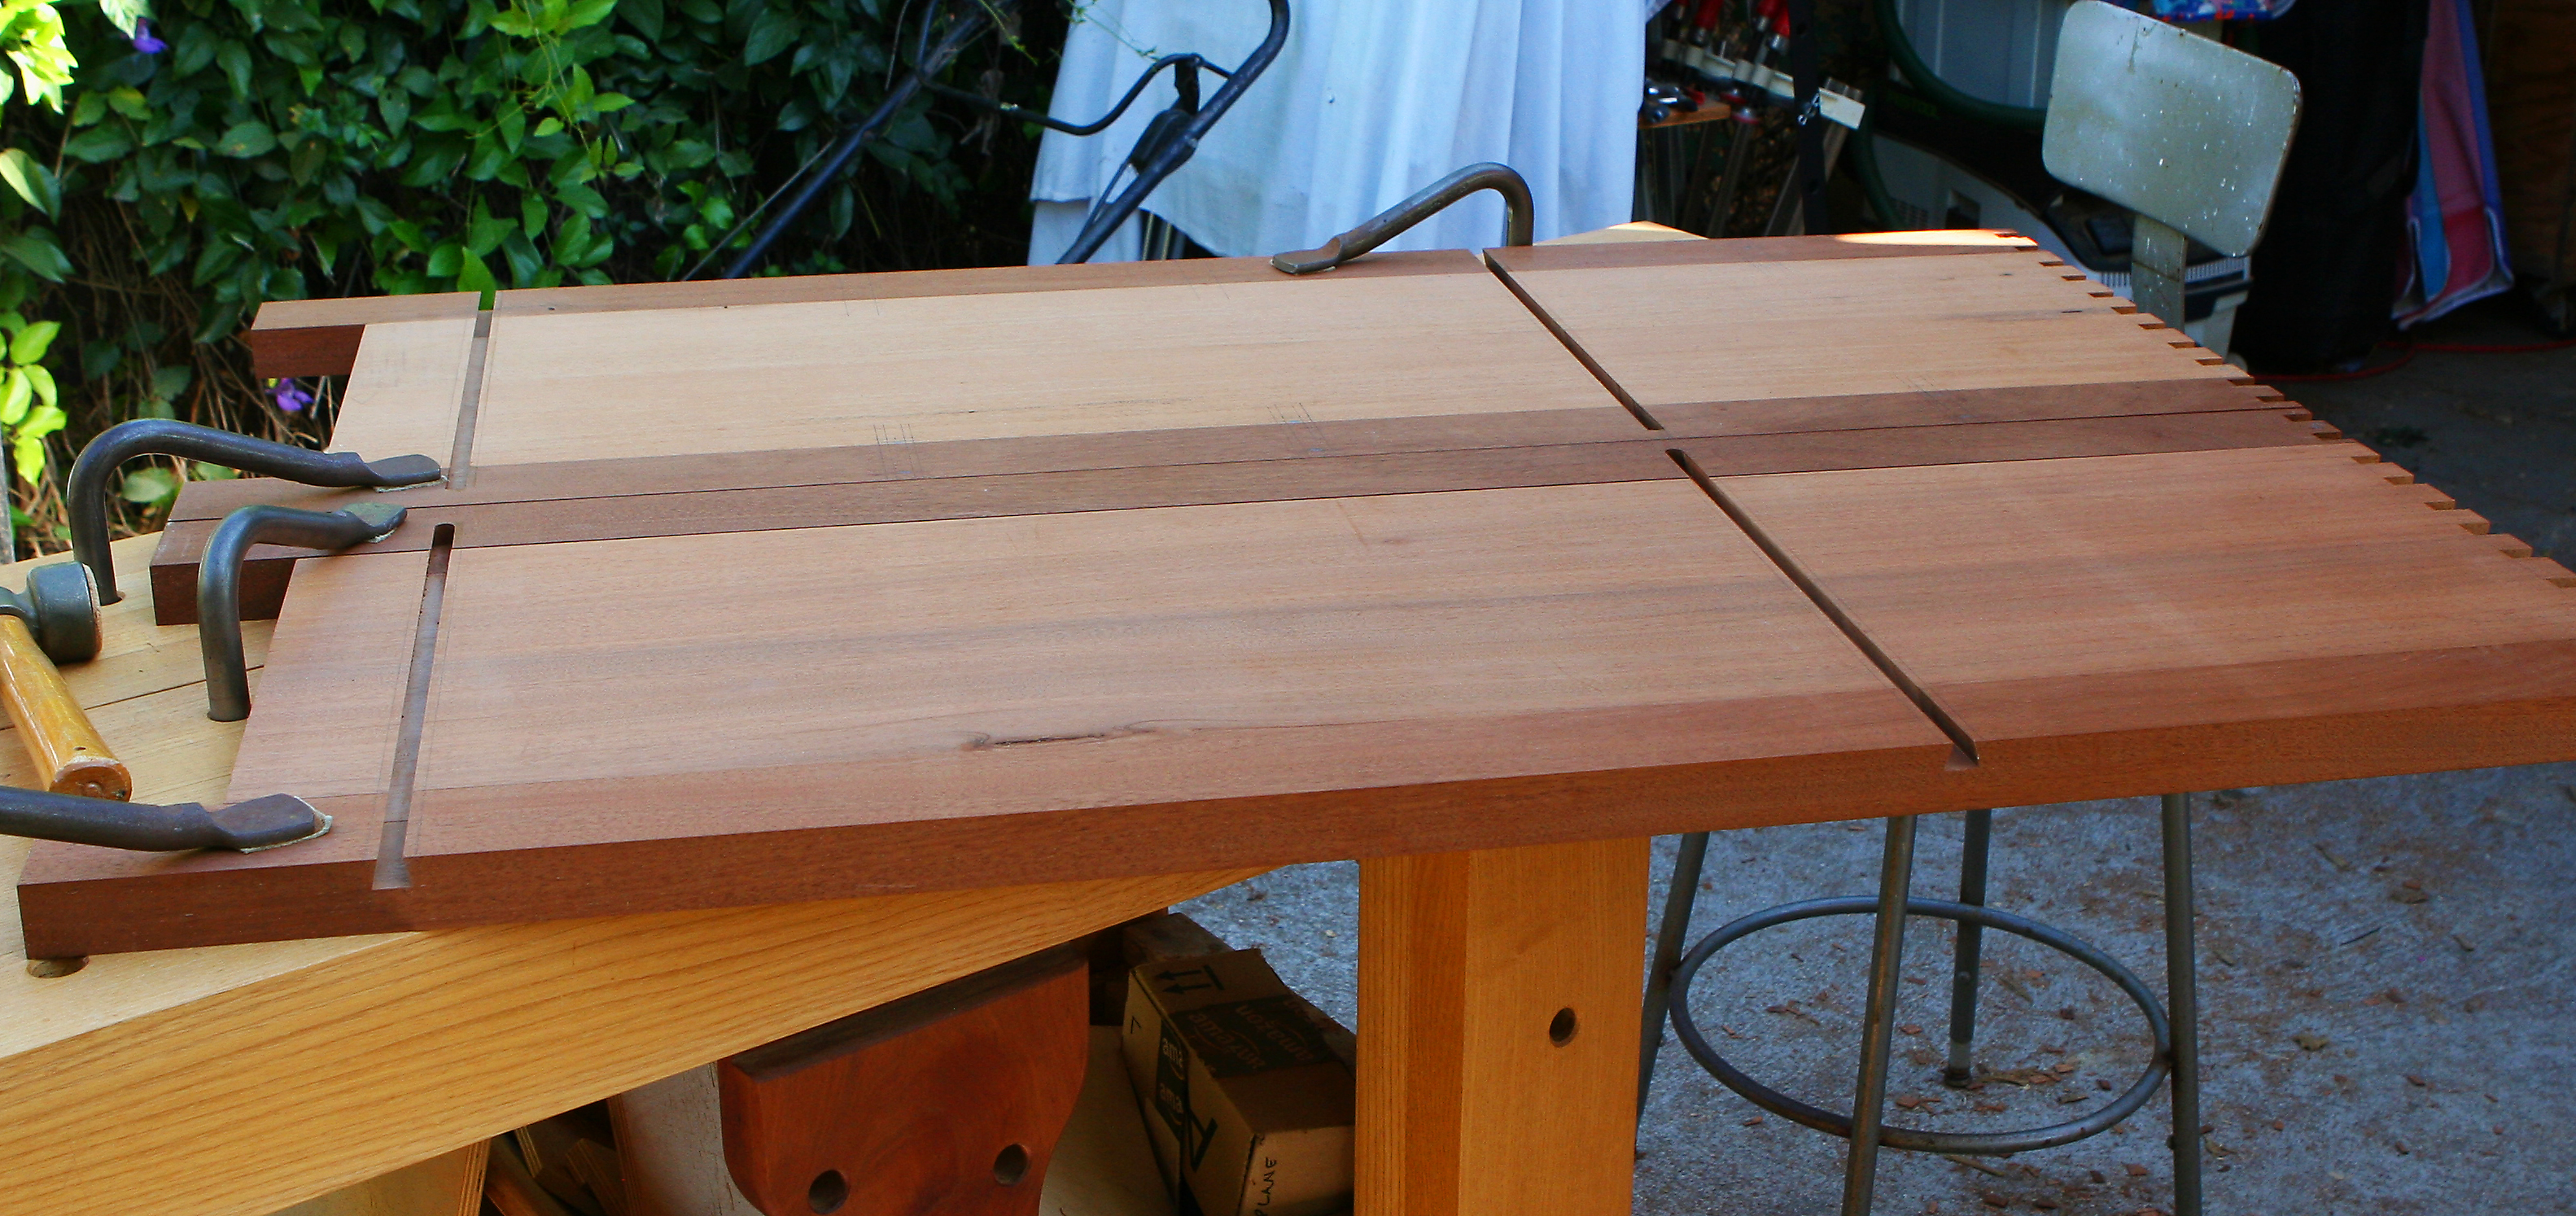 Marking web frame joinery